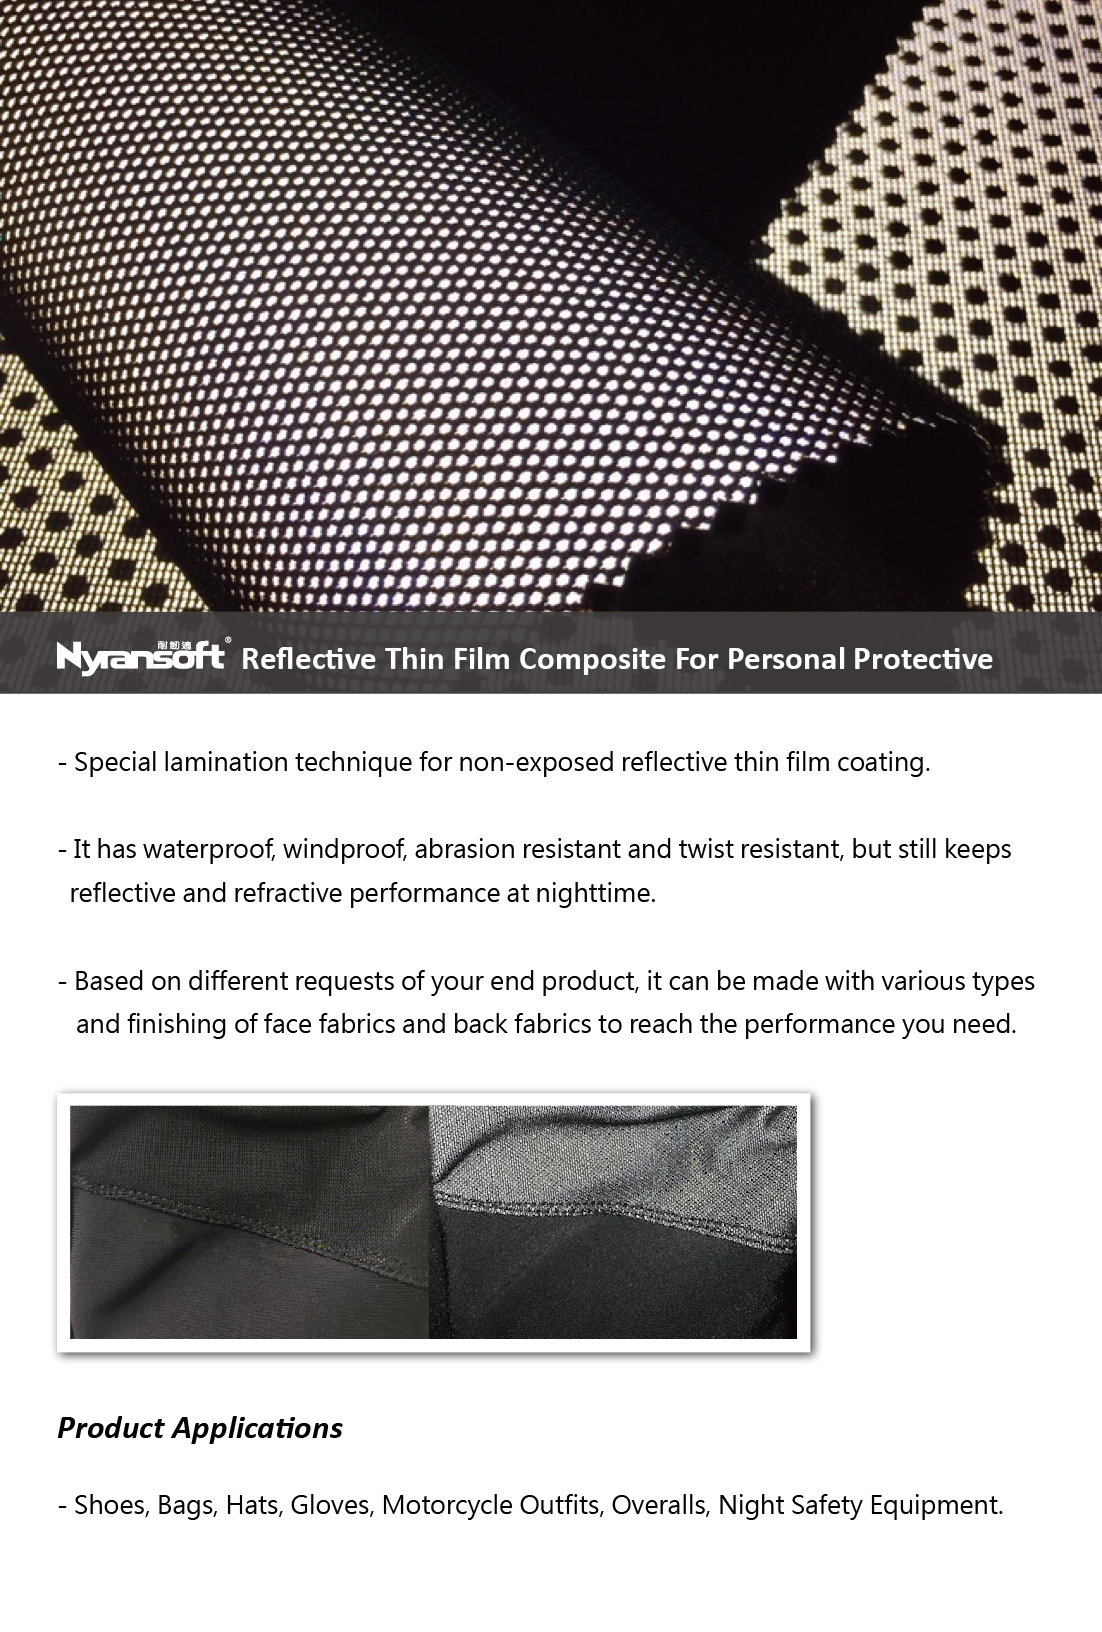 Reflective Thin Film Composite For Personal Protective-英-01